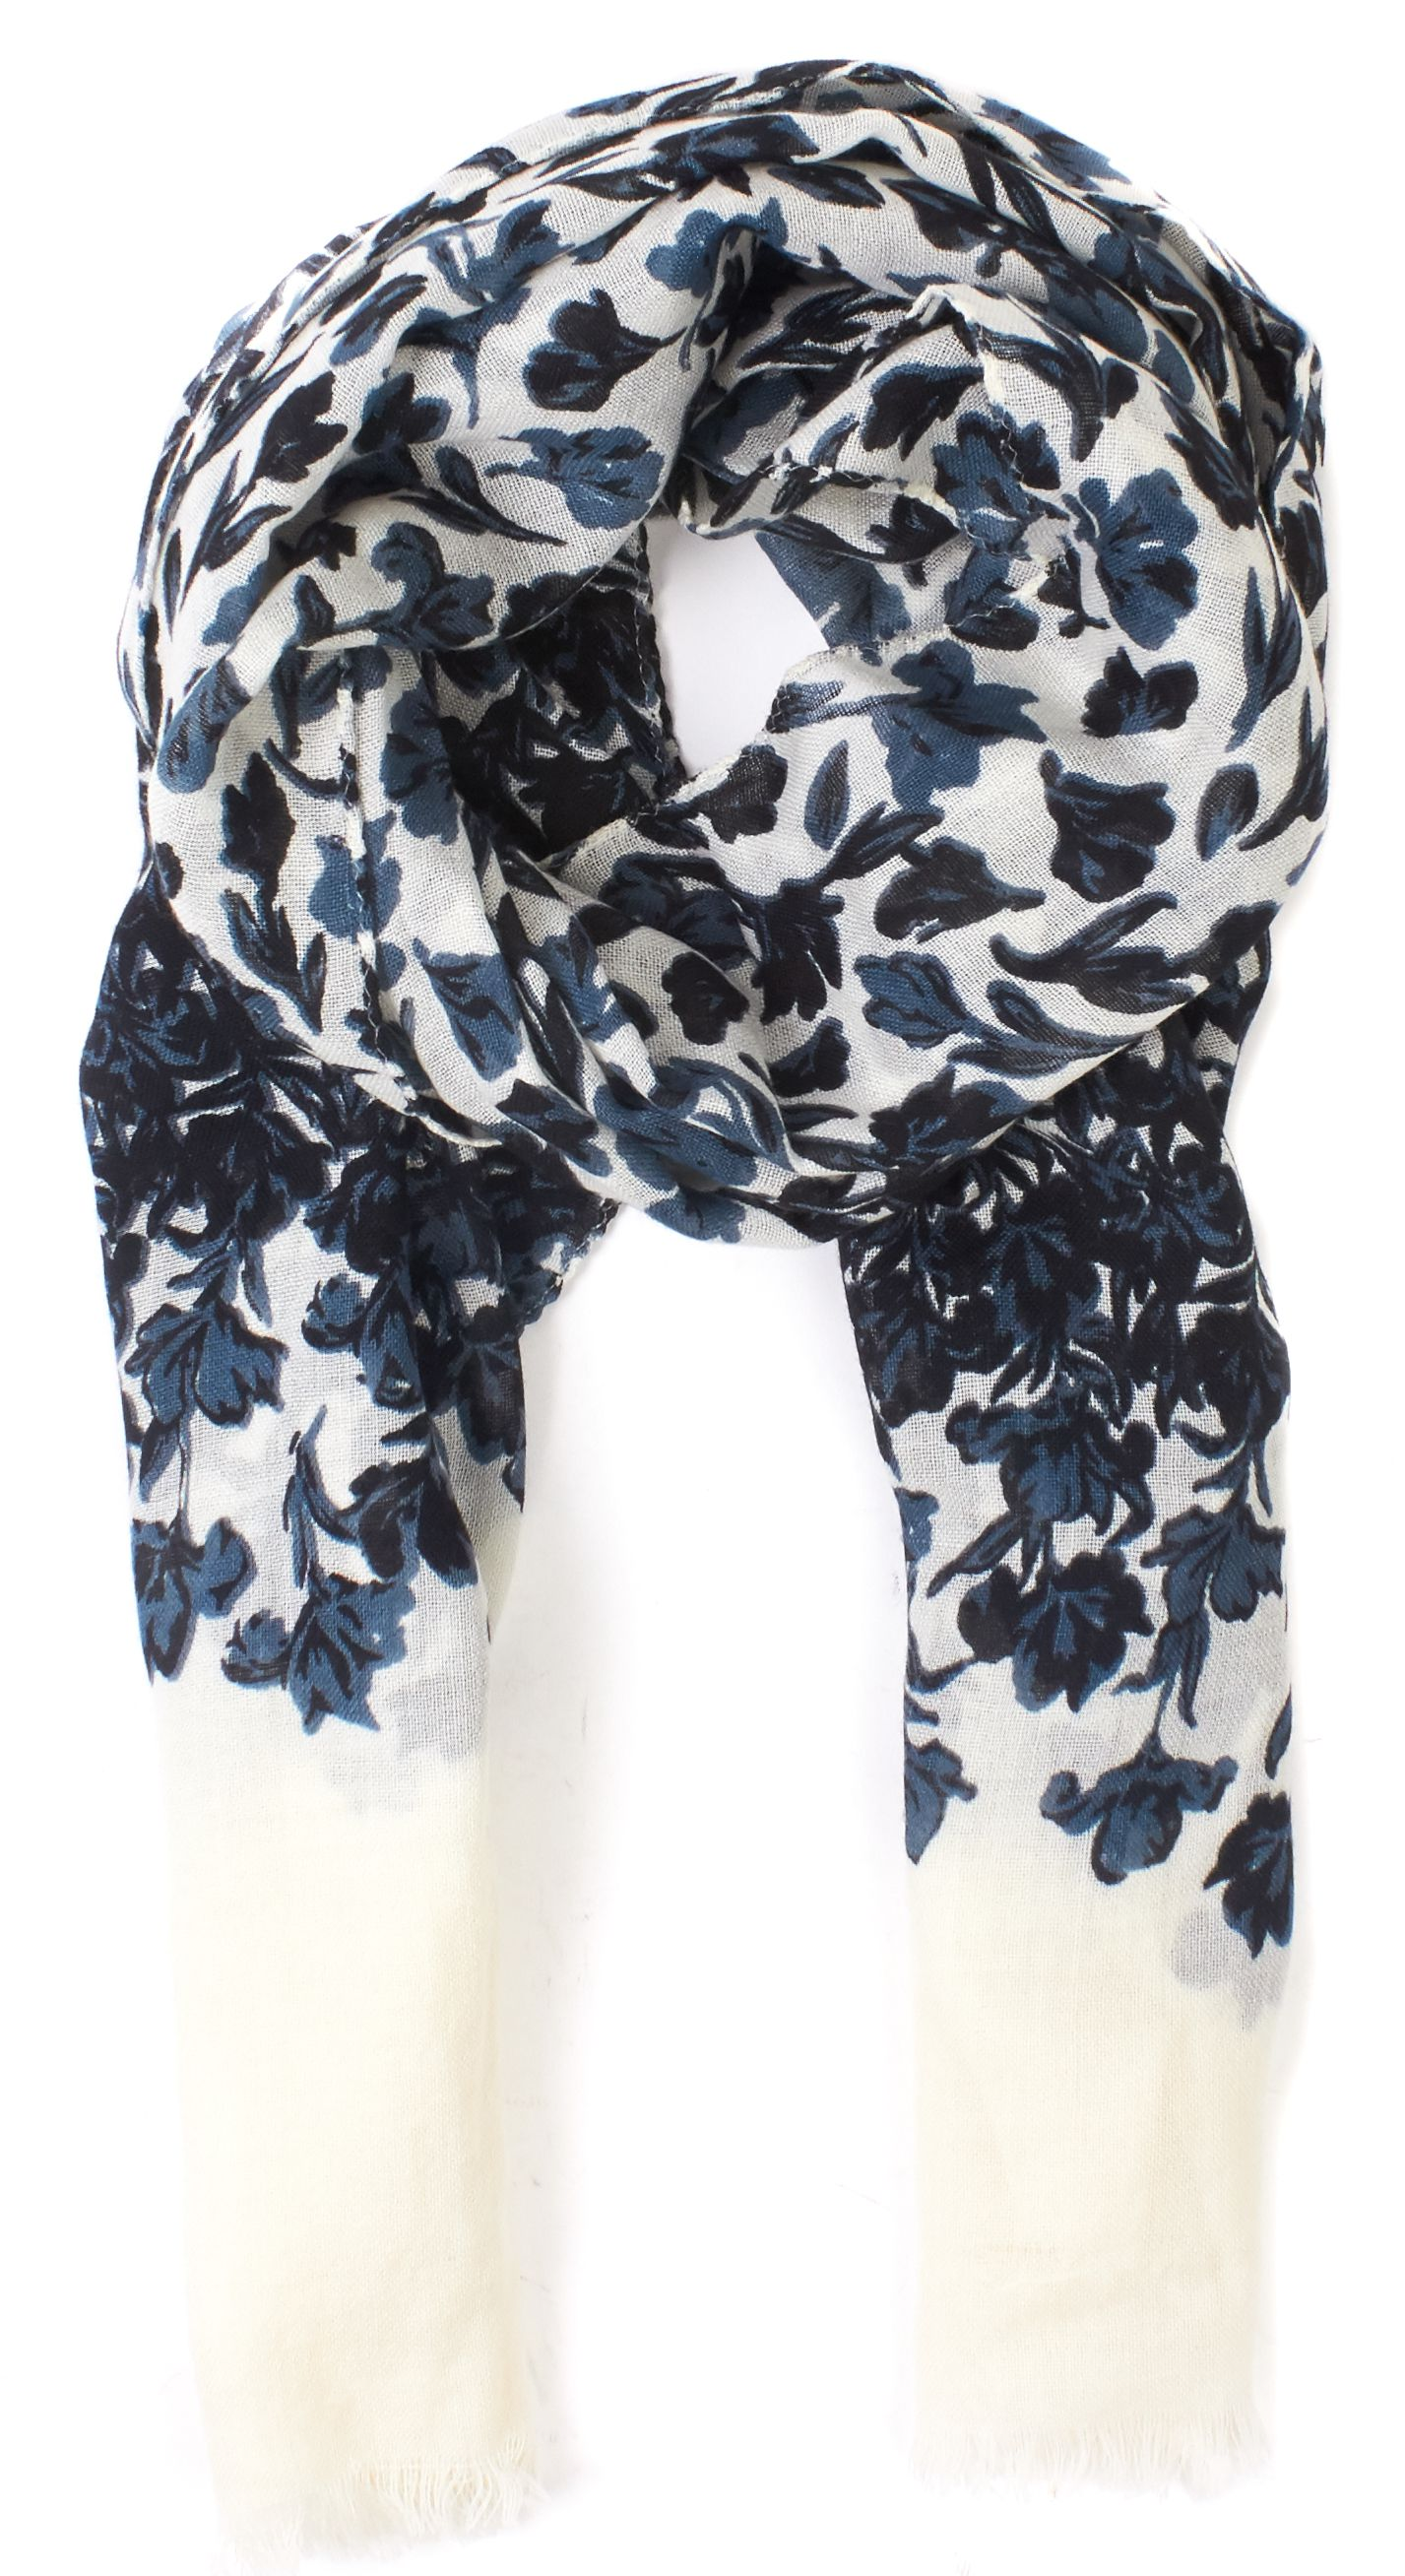 Tory Burch Blue Black White Floral Printed Long Lightweight Scarf ...